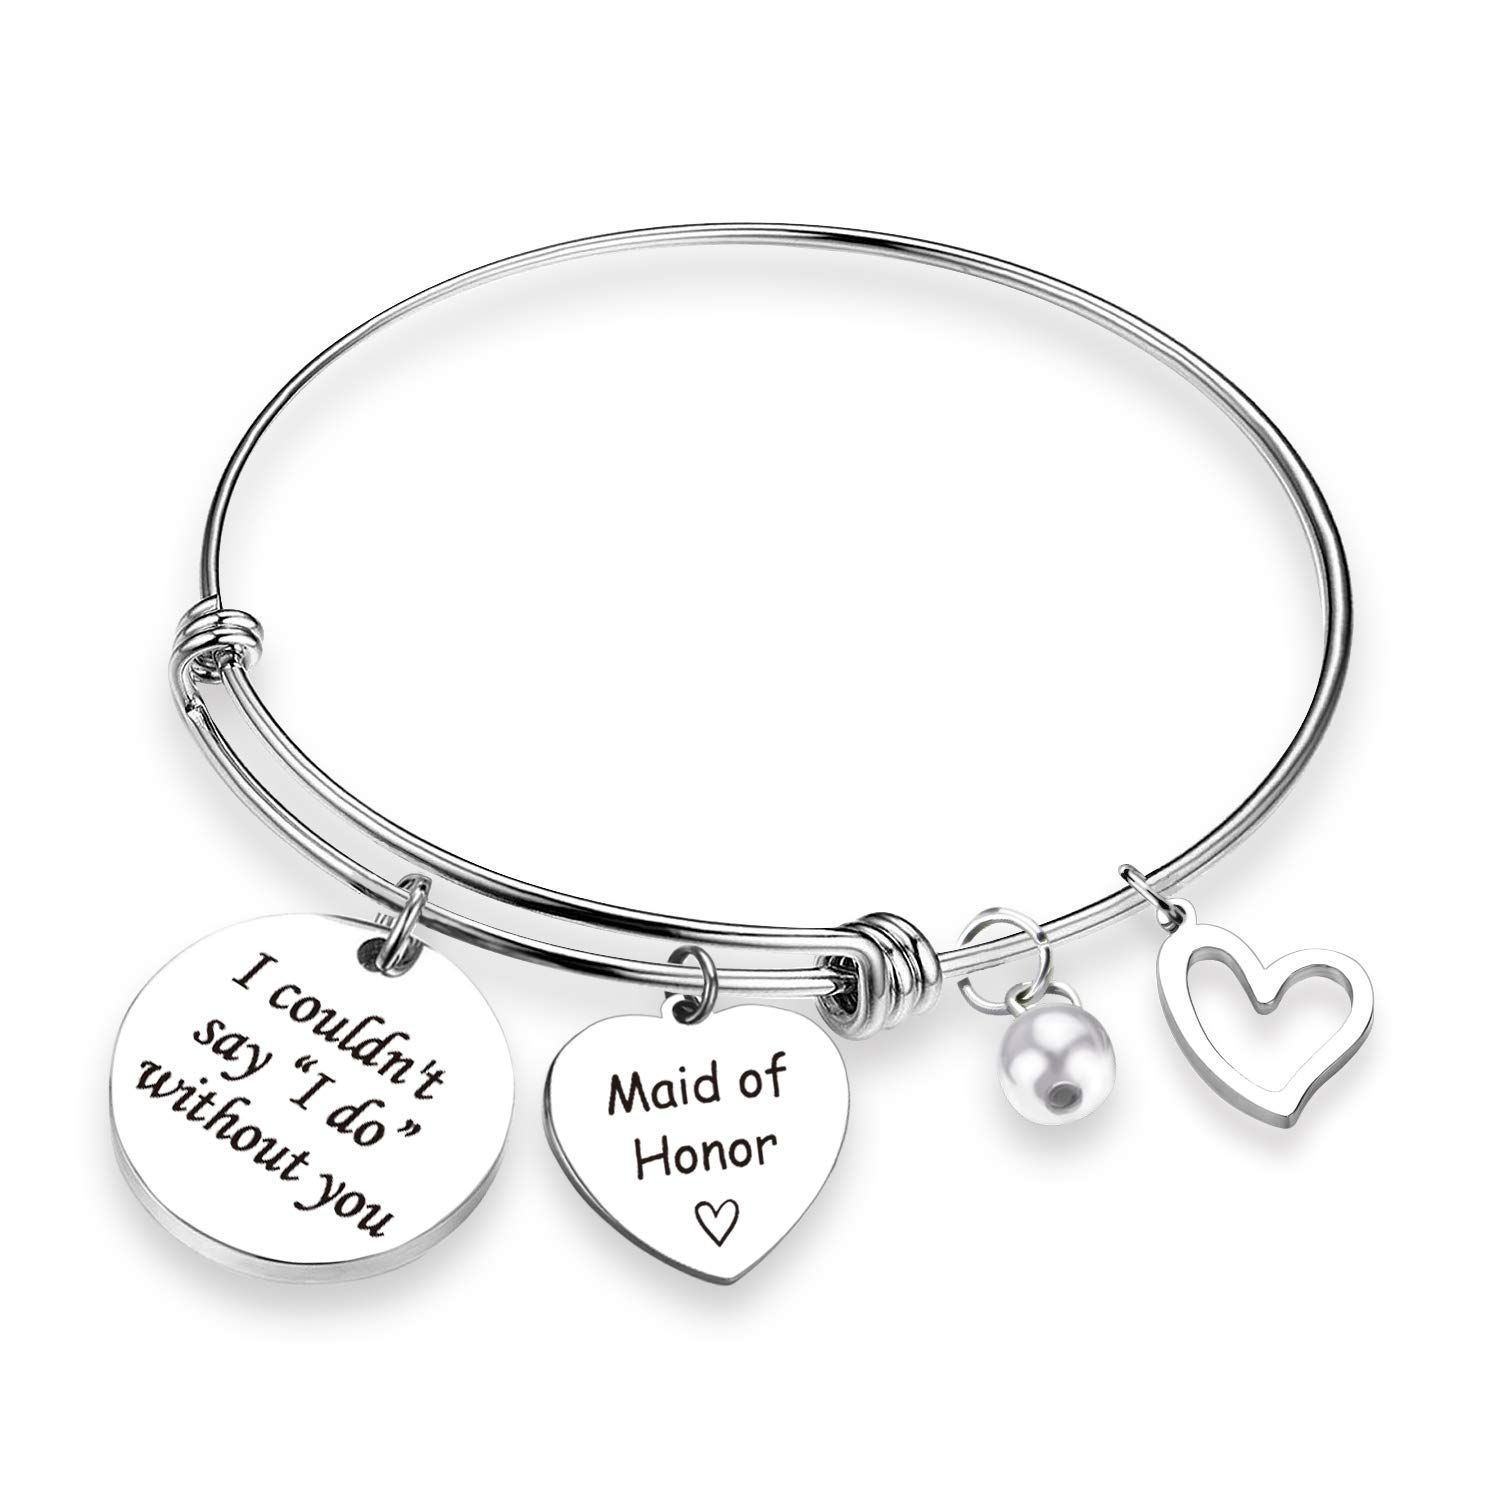 FEELMEM Maid of Honor Gift I Couldnt Say I Do Without You Bangle Bracelet Bridesmaid Jewelry Maid of Honor Proposal